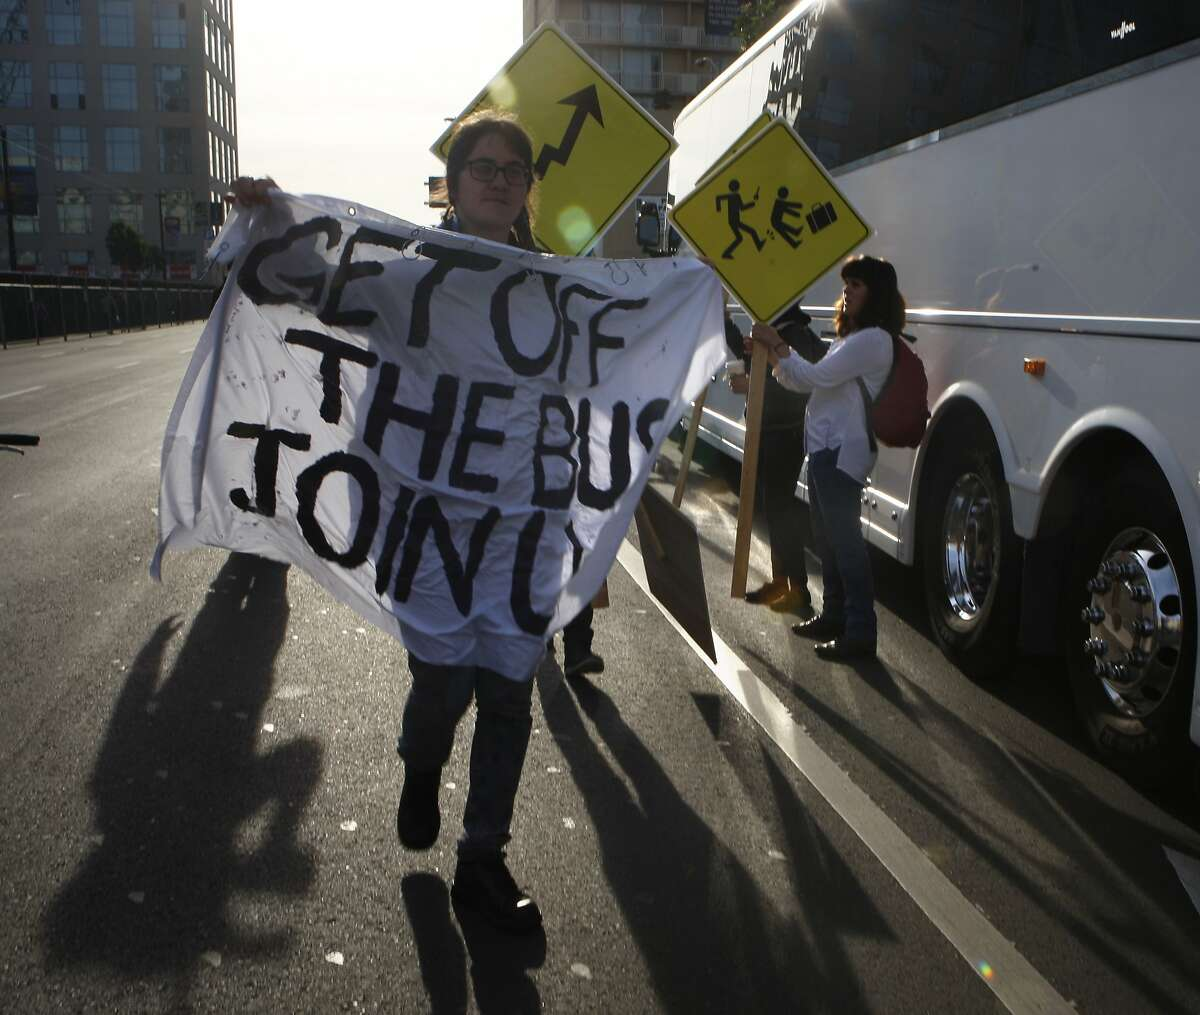 Protestors block a Facebook bus heading to Menlo Park on 8th at Market streets in San Francisco, Calif., on Tuesday, January 22, 2014. The San Francisco Metropolitan Transportation Agency votes on an 18-month pilot plan allowing Google buses to use designated Muni bus stops to pick up and drop off tech commuters to Silicon Valley.